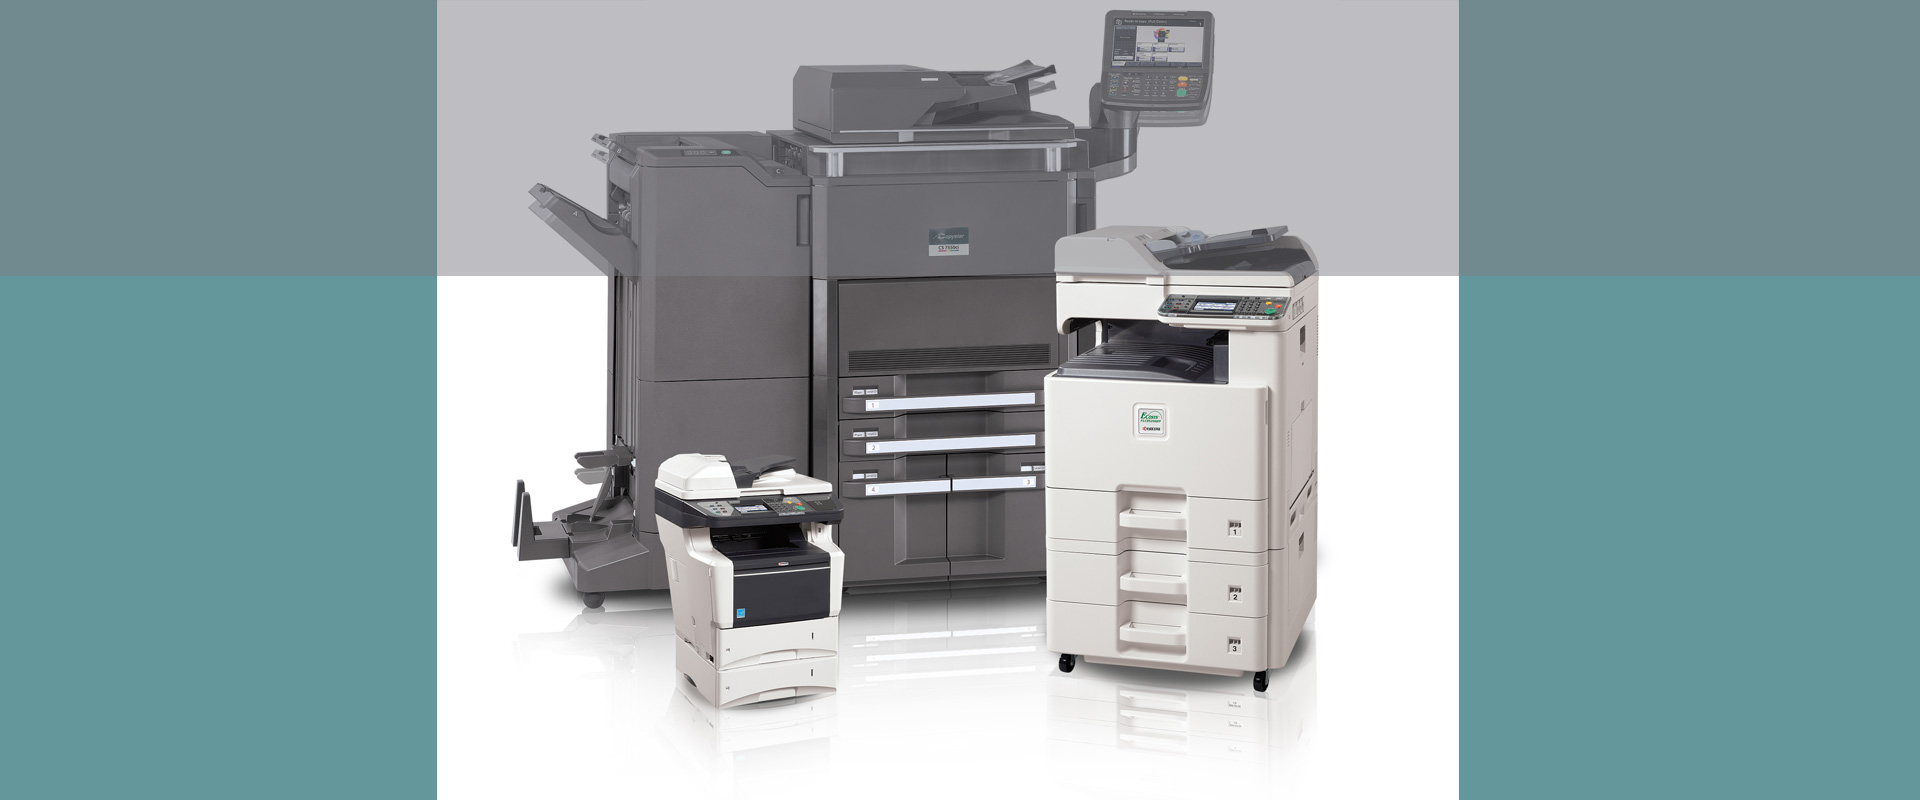 Used Copiers Advanced Photocopy